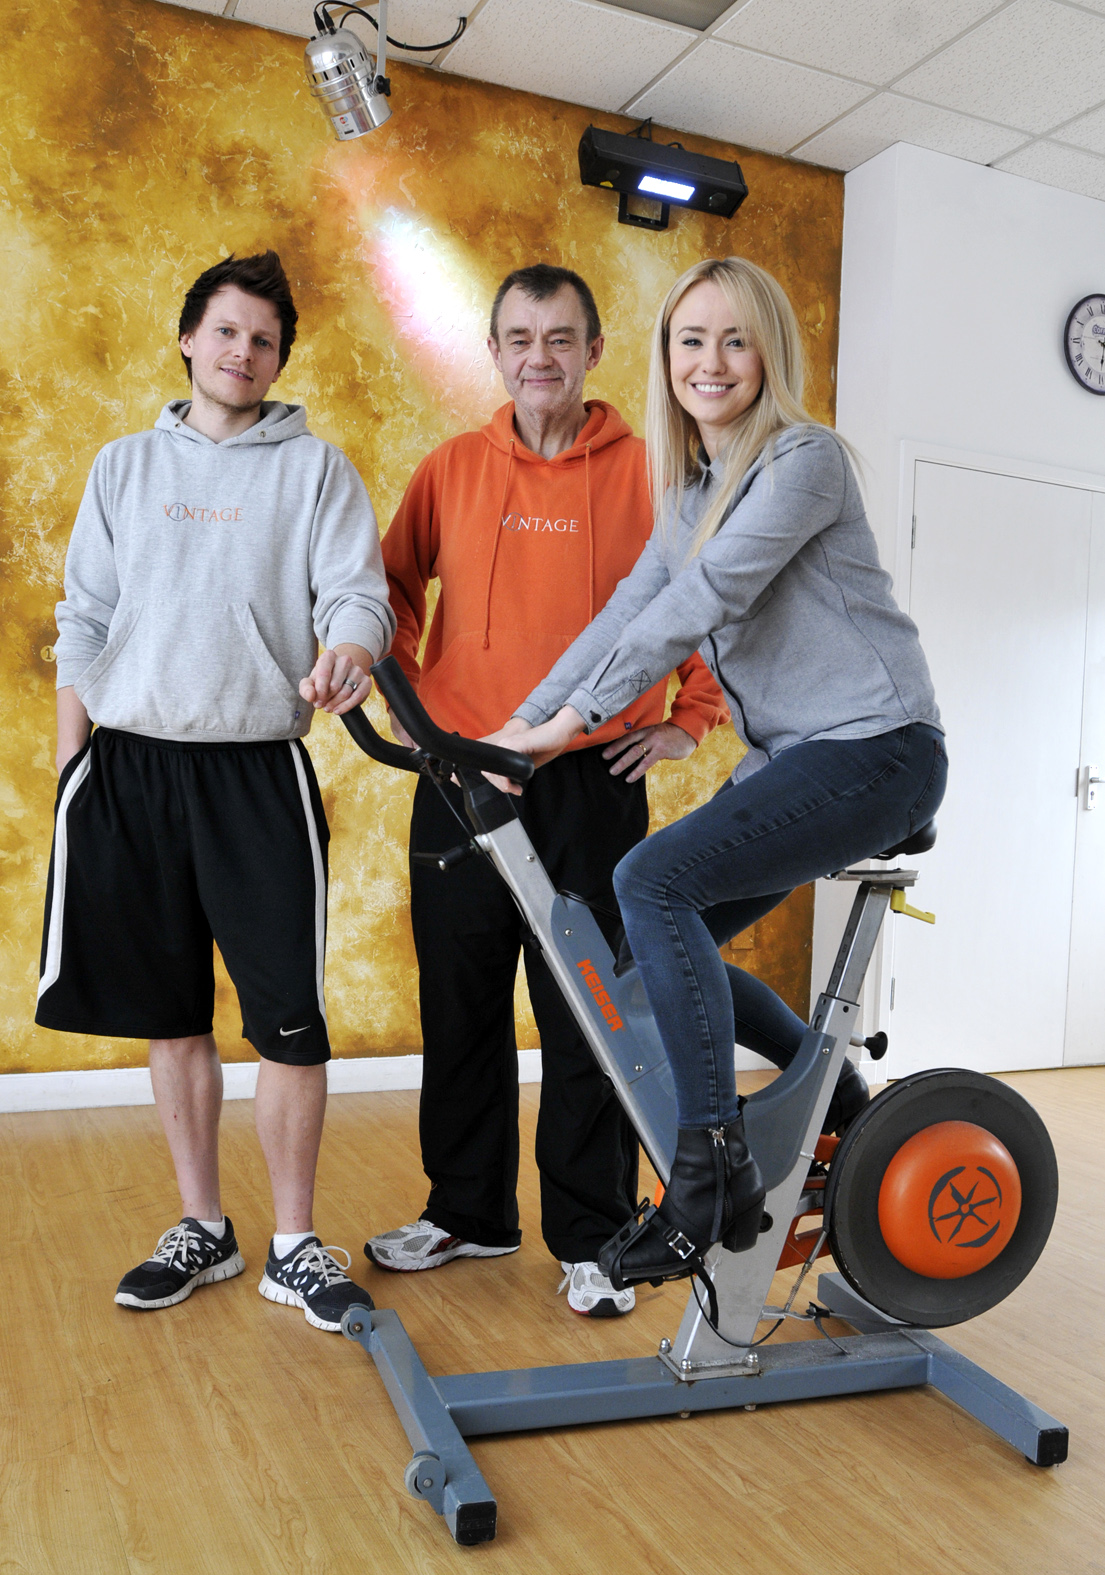 Emmerdale star backing health and fitness drive